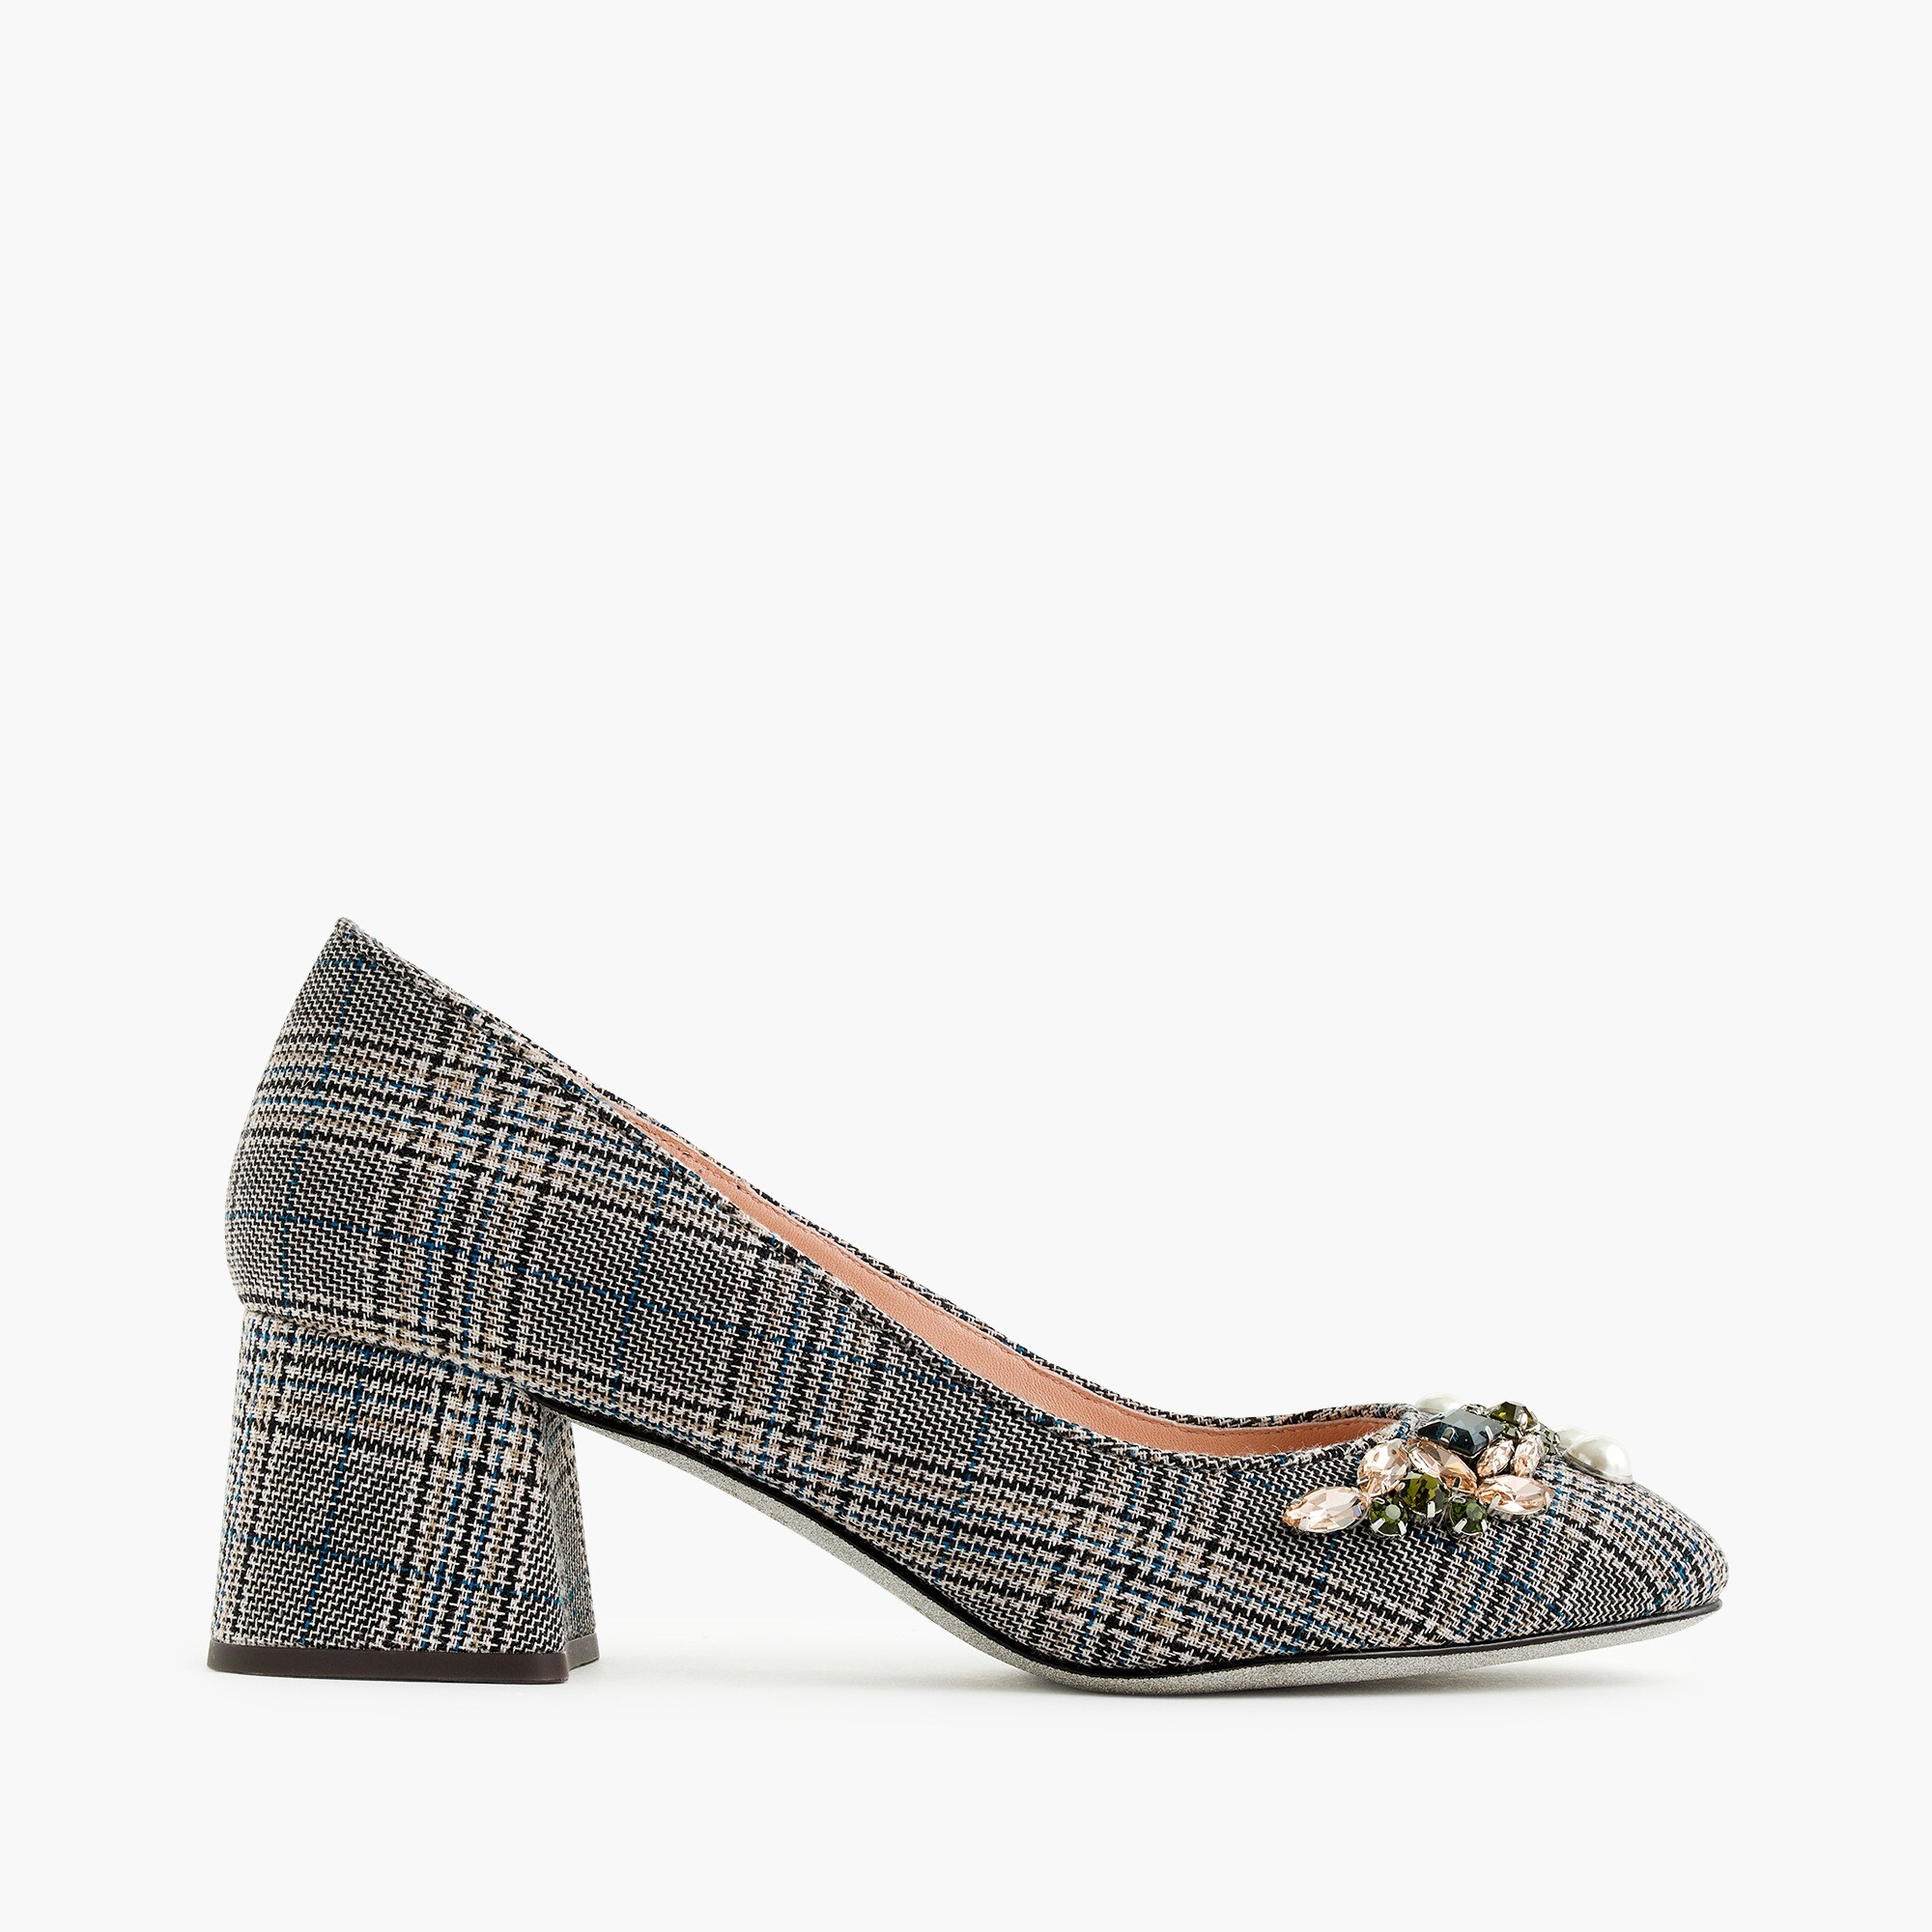 Image 2 for Block-heel pumps in embellished plaid